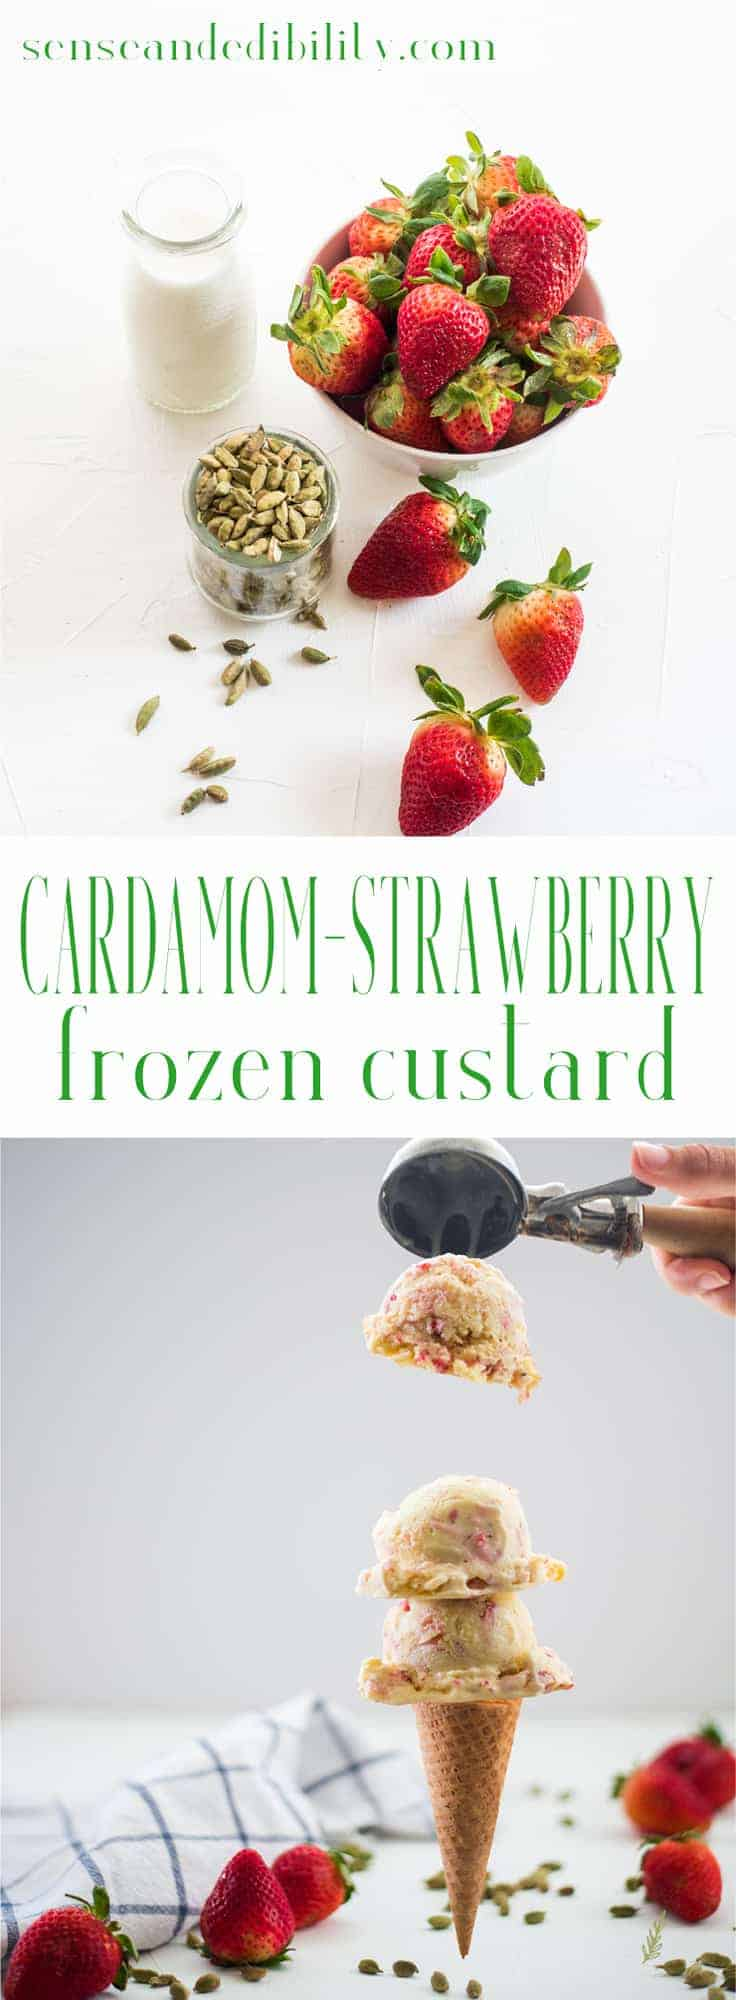 Sense & Edibility's Cardamom Strawberry Frozen Custard